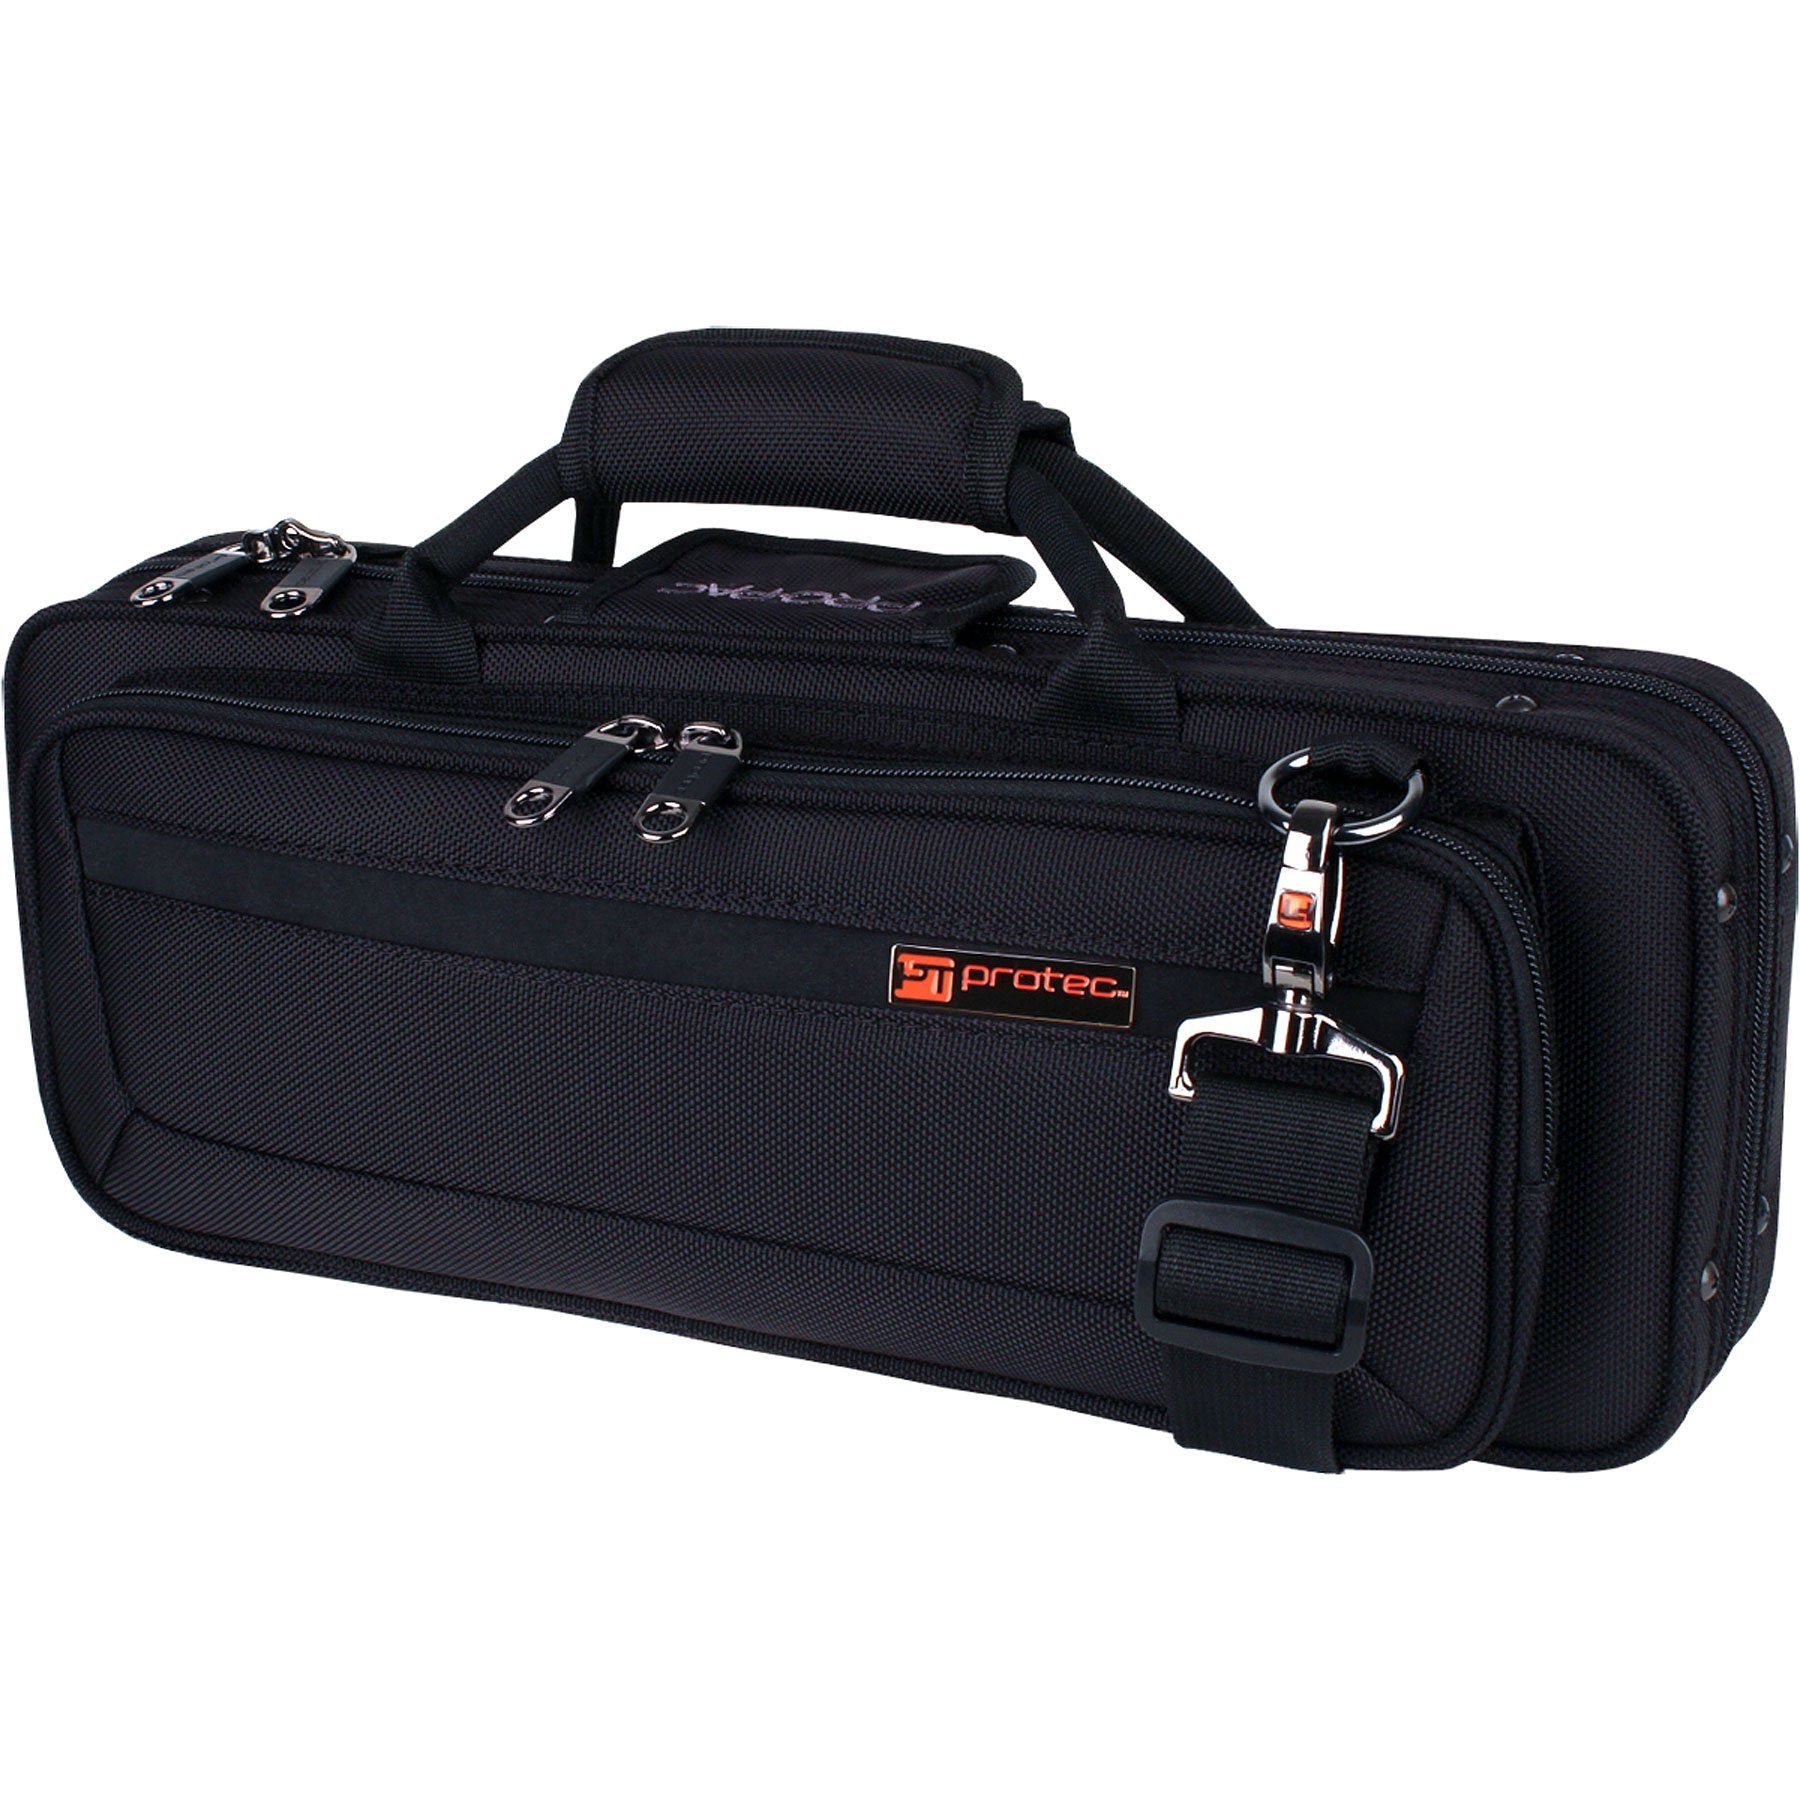 Protec - Flute/Piccolo Combi PRO PAC Case-Accessories-Protec-Music Elements